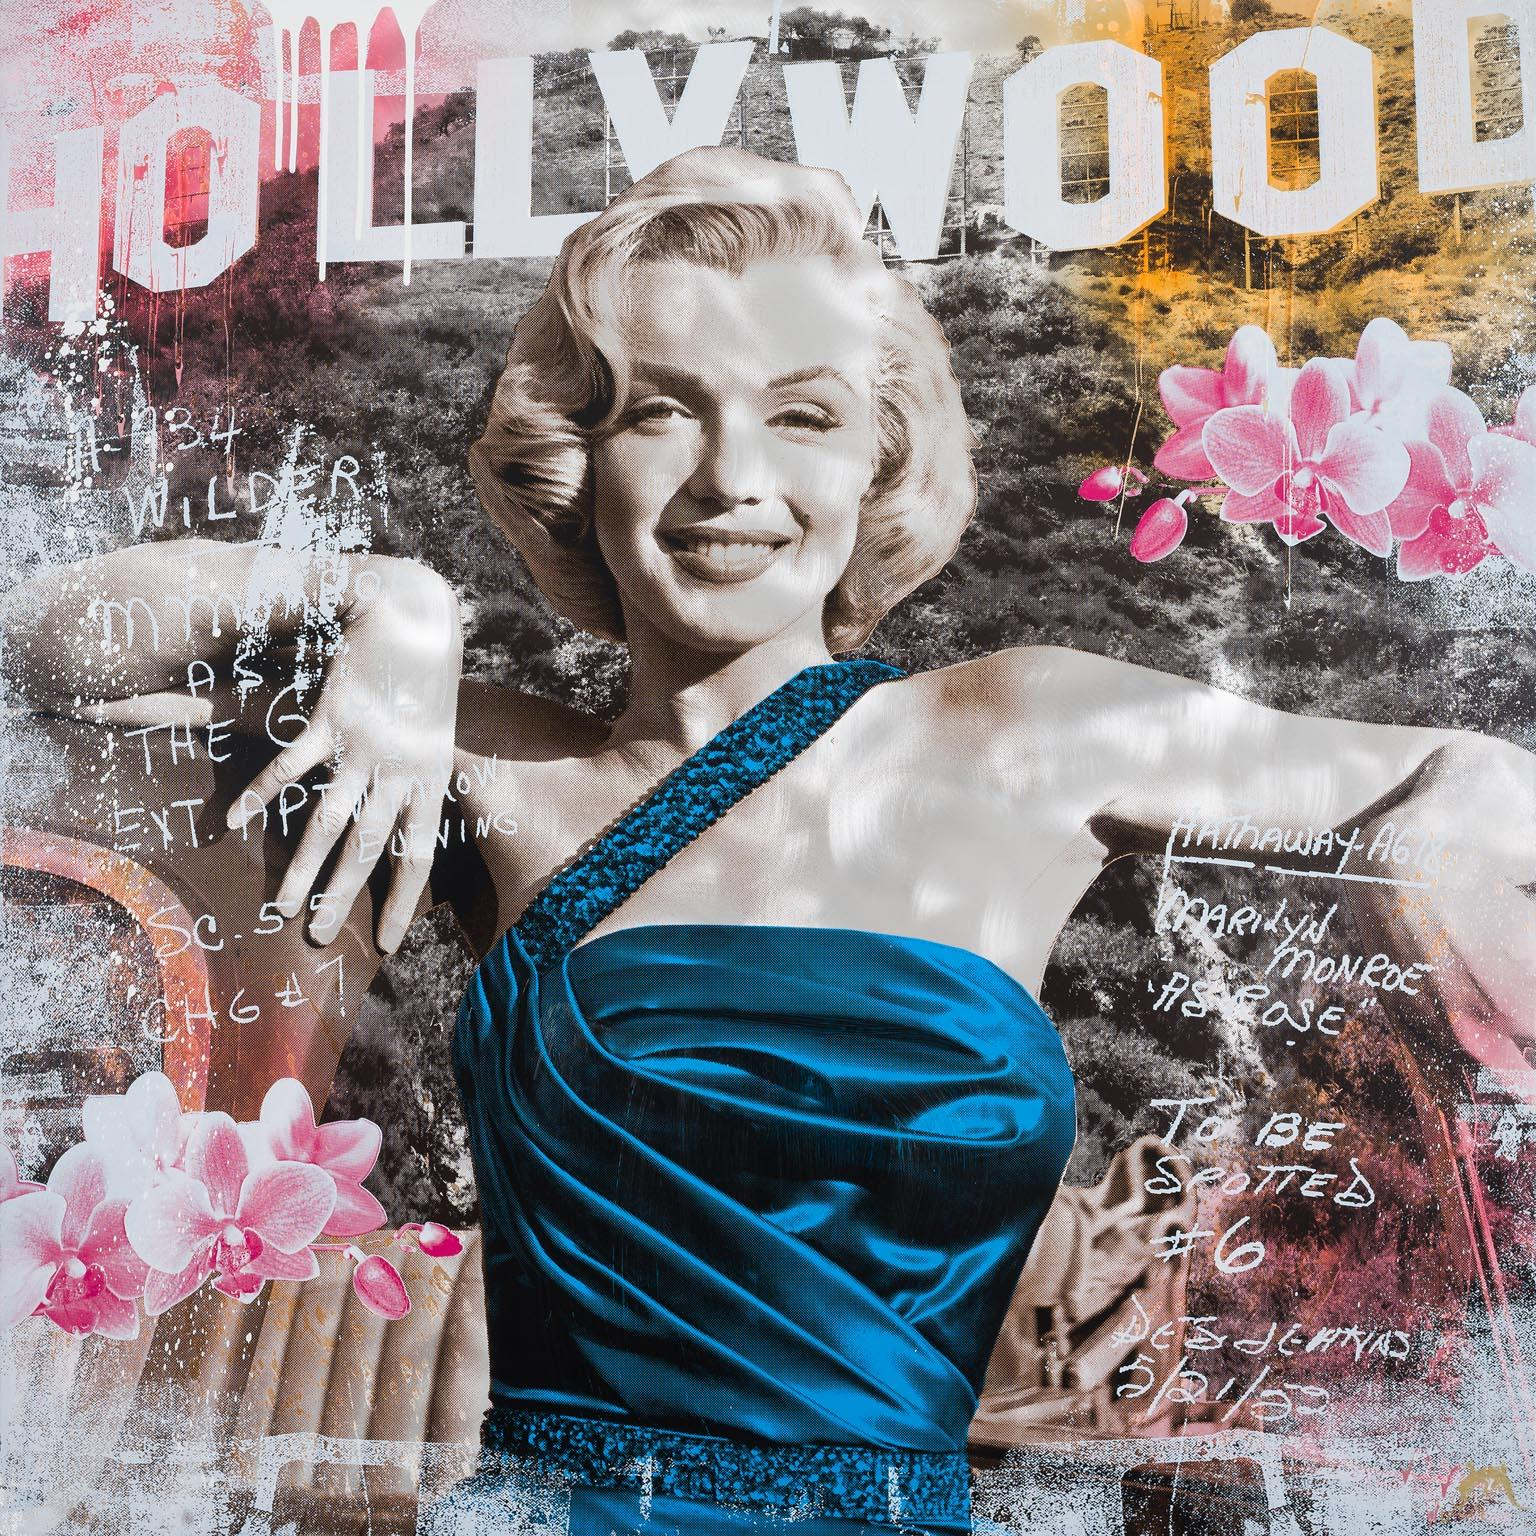 As Rose - contemporary pop art work of Hollywood icon Marilyn Monroe